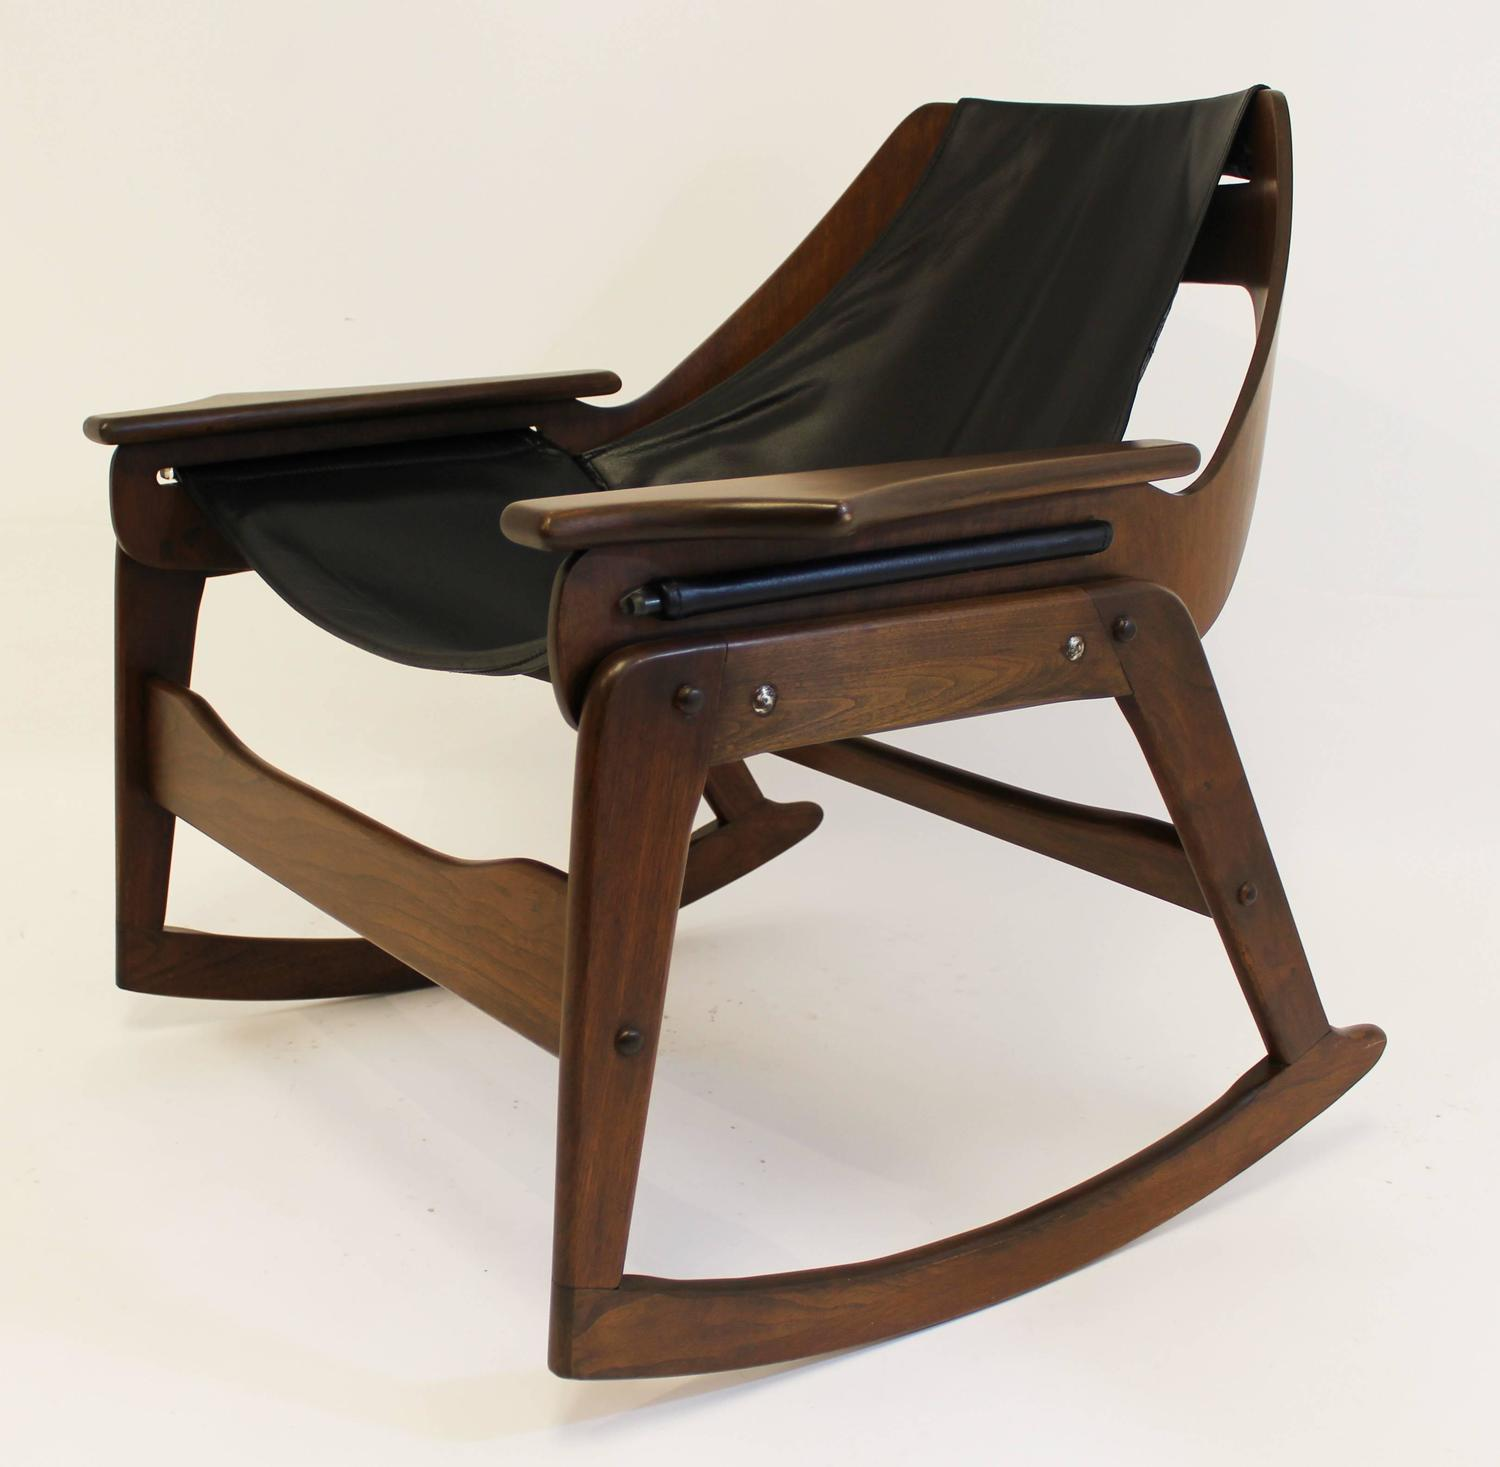 Century bentwood rocking chair by jerry johnson for sale at 1stdibs